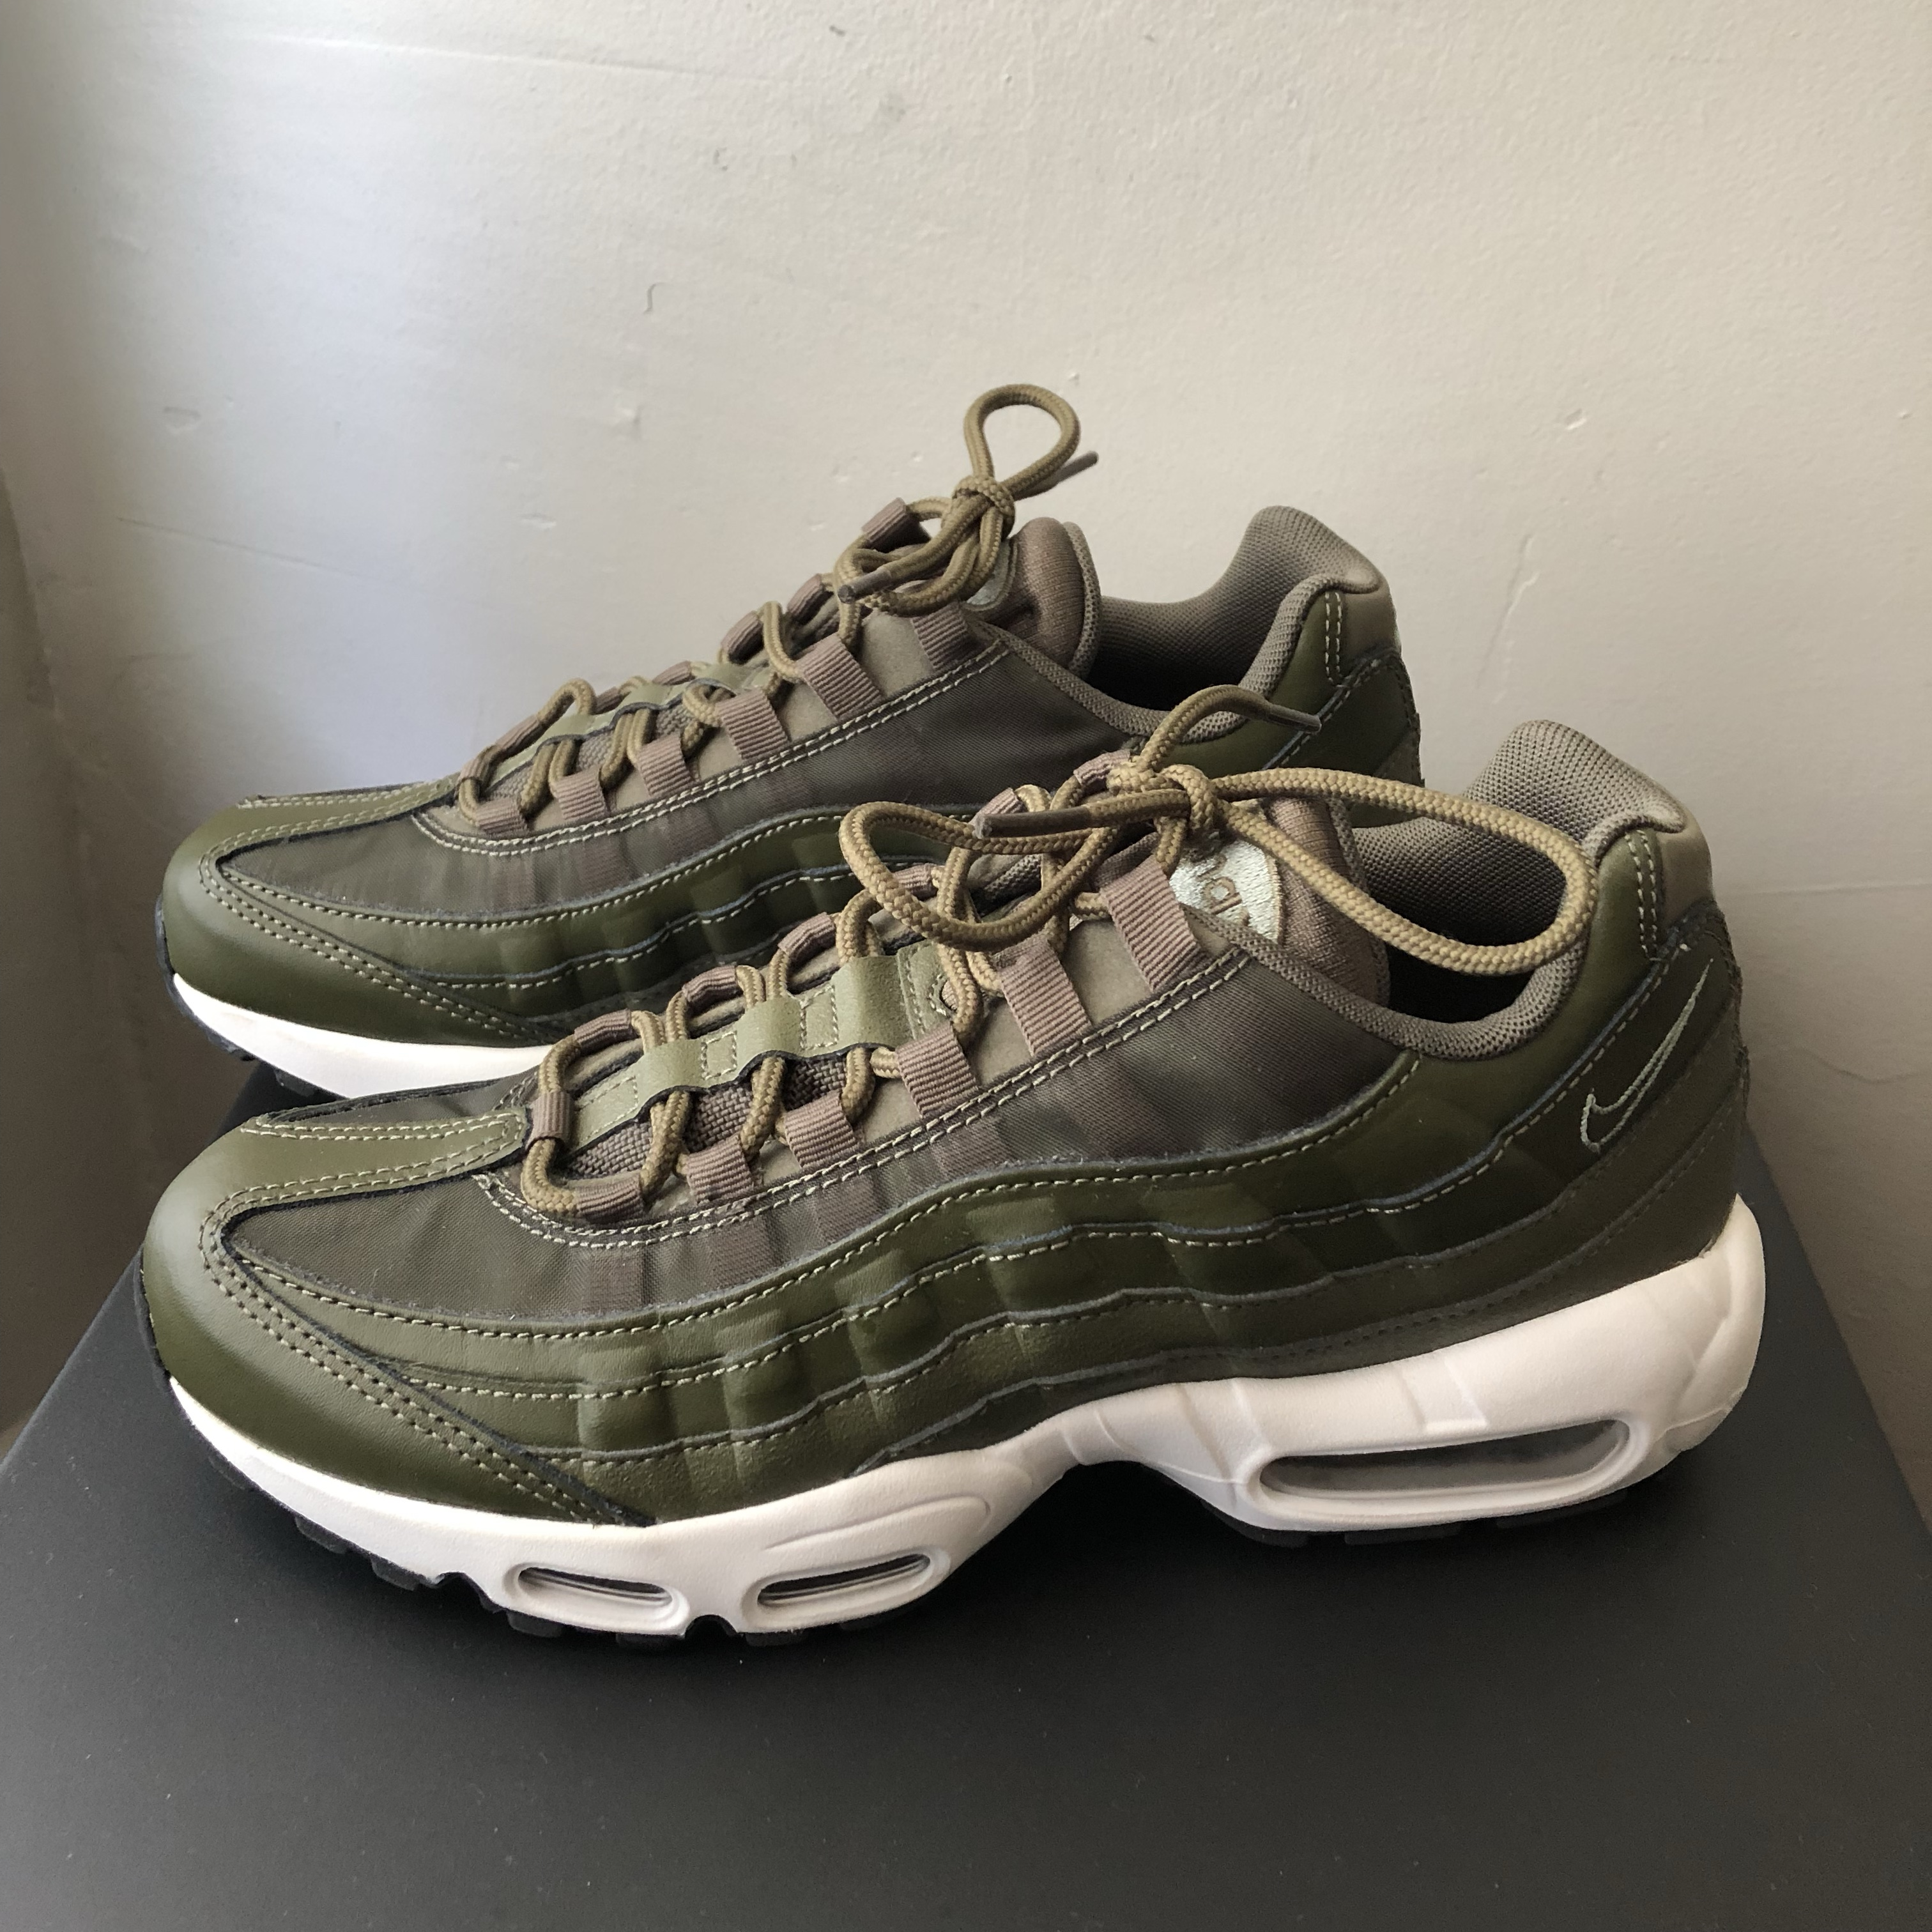 Essential Nike Air Max 95 Olive Green with Mesh and Depop